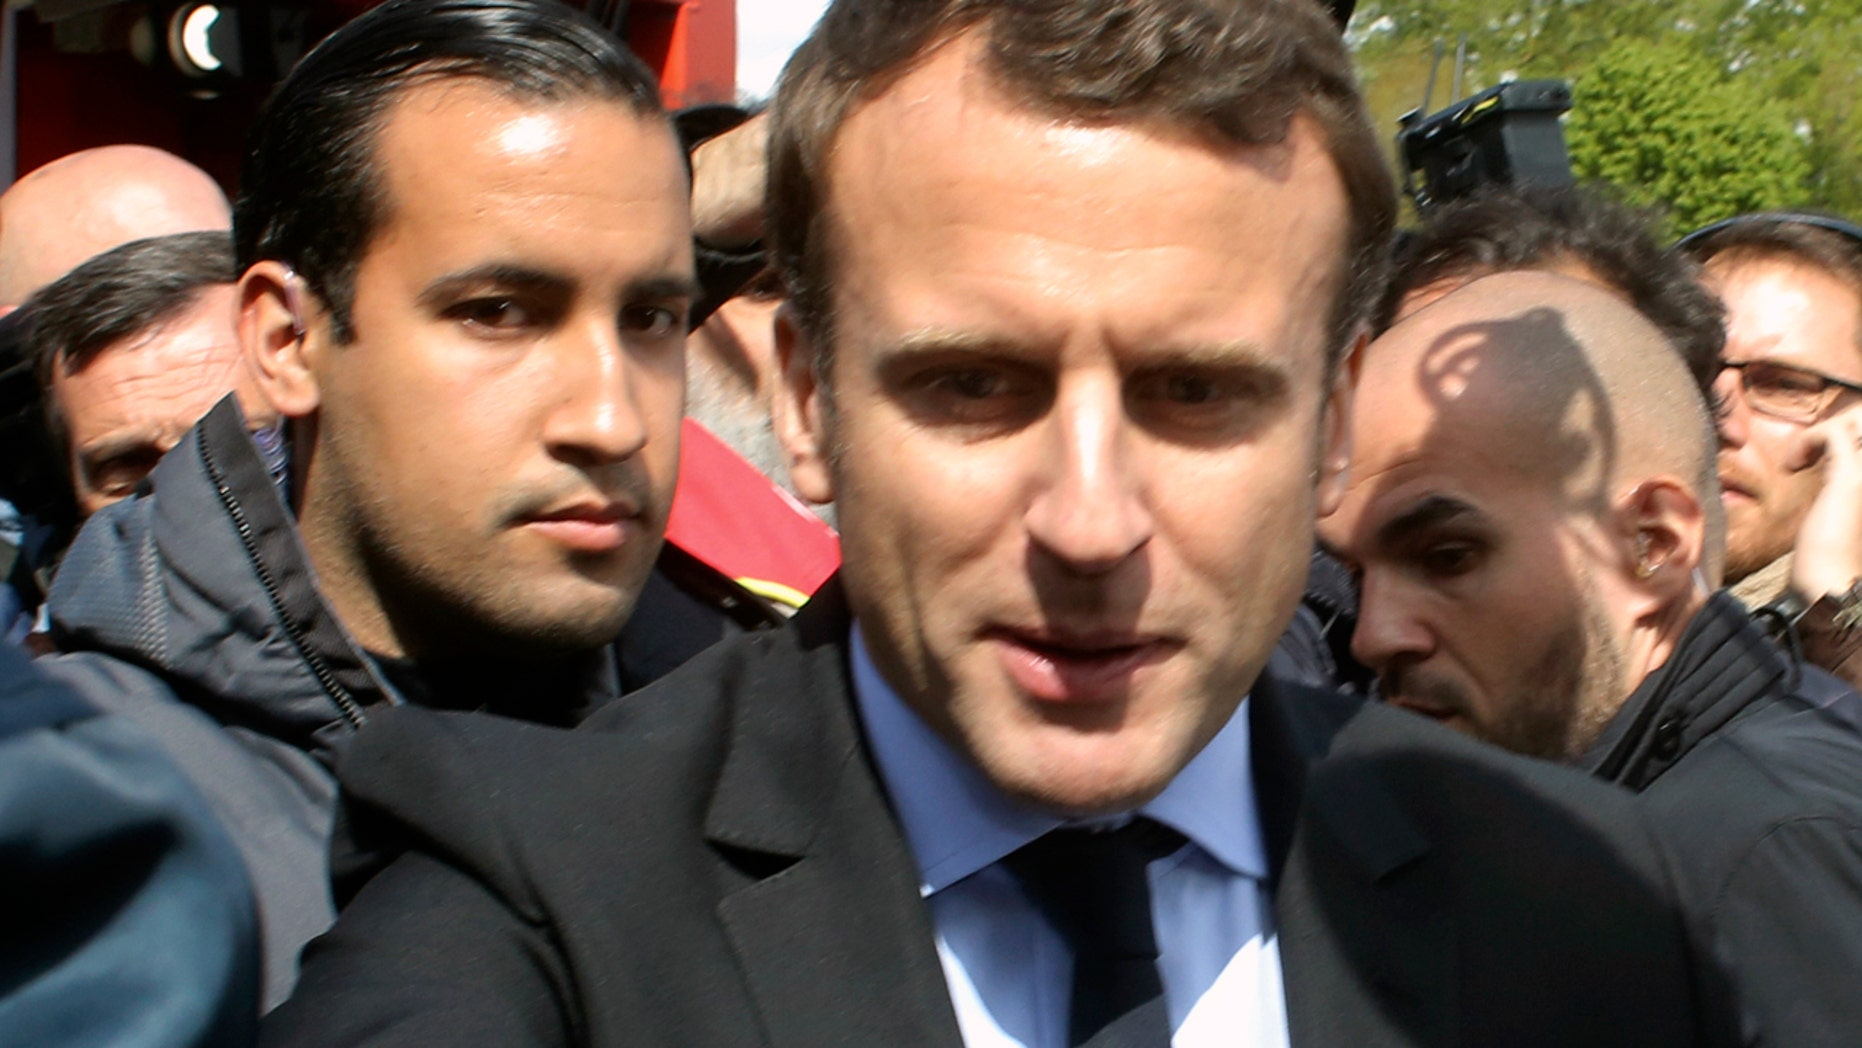 Alexandre Benalla stands with Emmanuel Macron during last year's French presidential election campaign. Benalla, now a top security aide to Macron, was caught on camera beating a May Day protester.